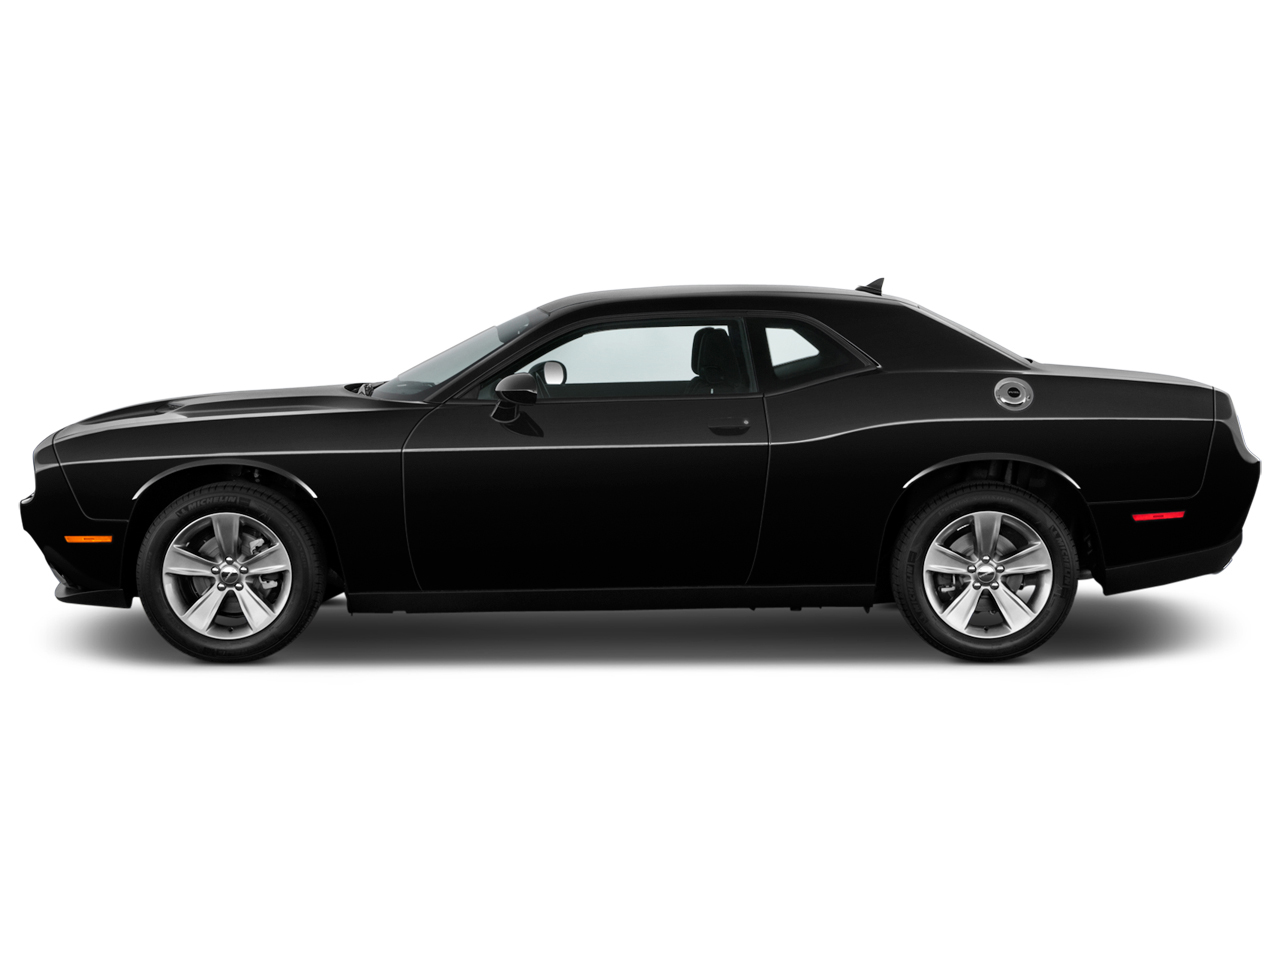 New and Used Dodge Challenger: Prices, Photos, Reviews, Specs - The Car Connection